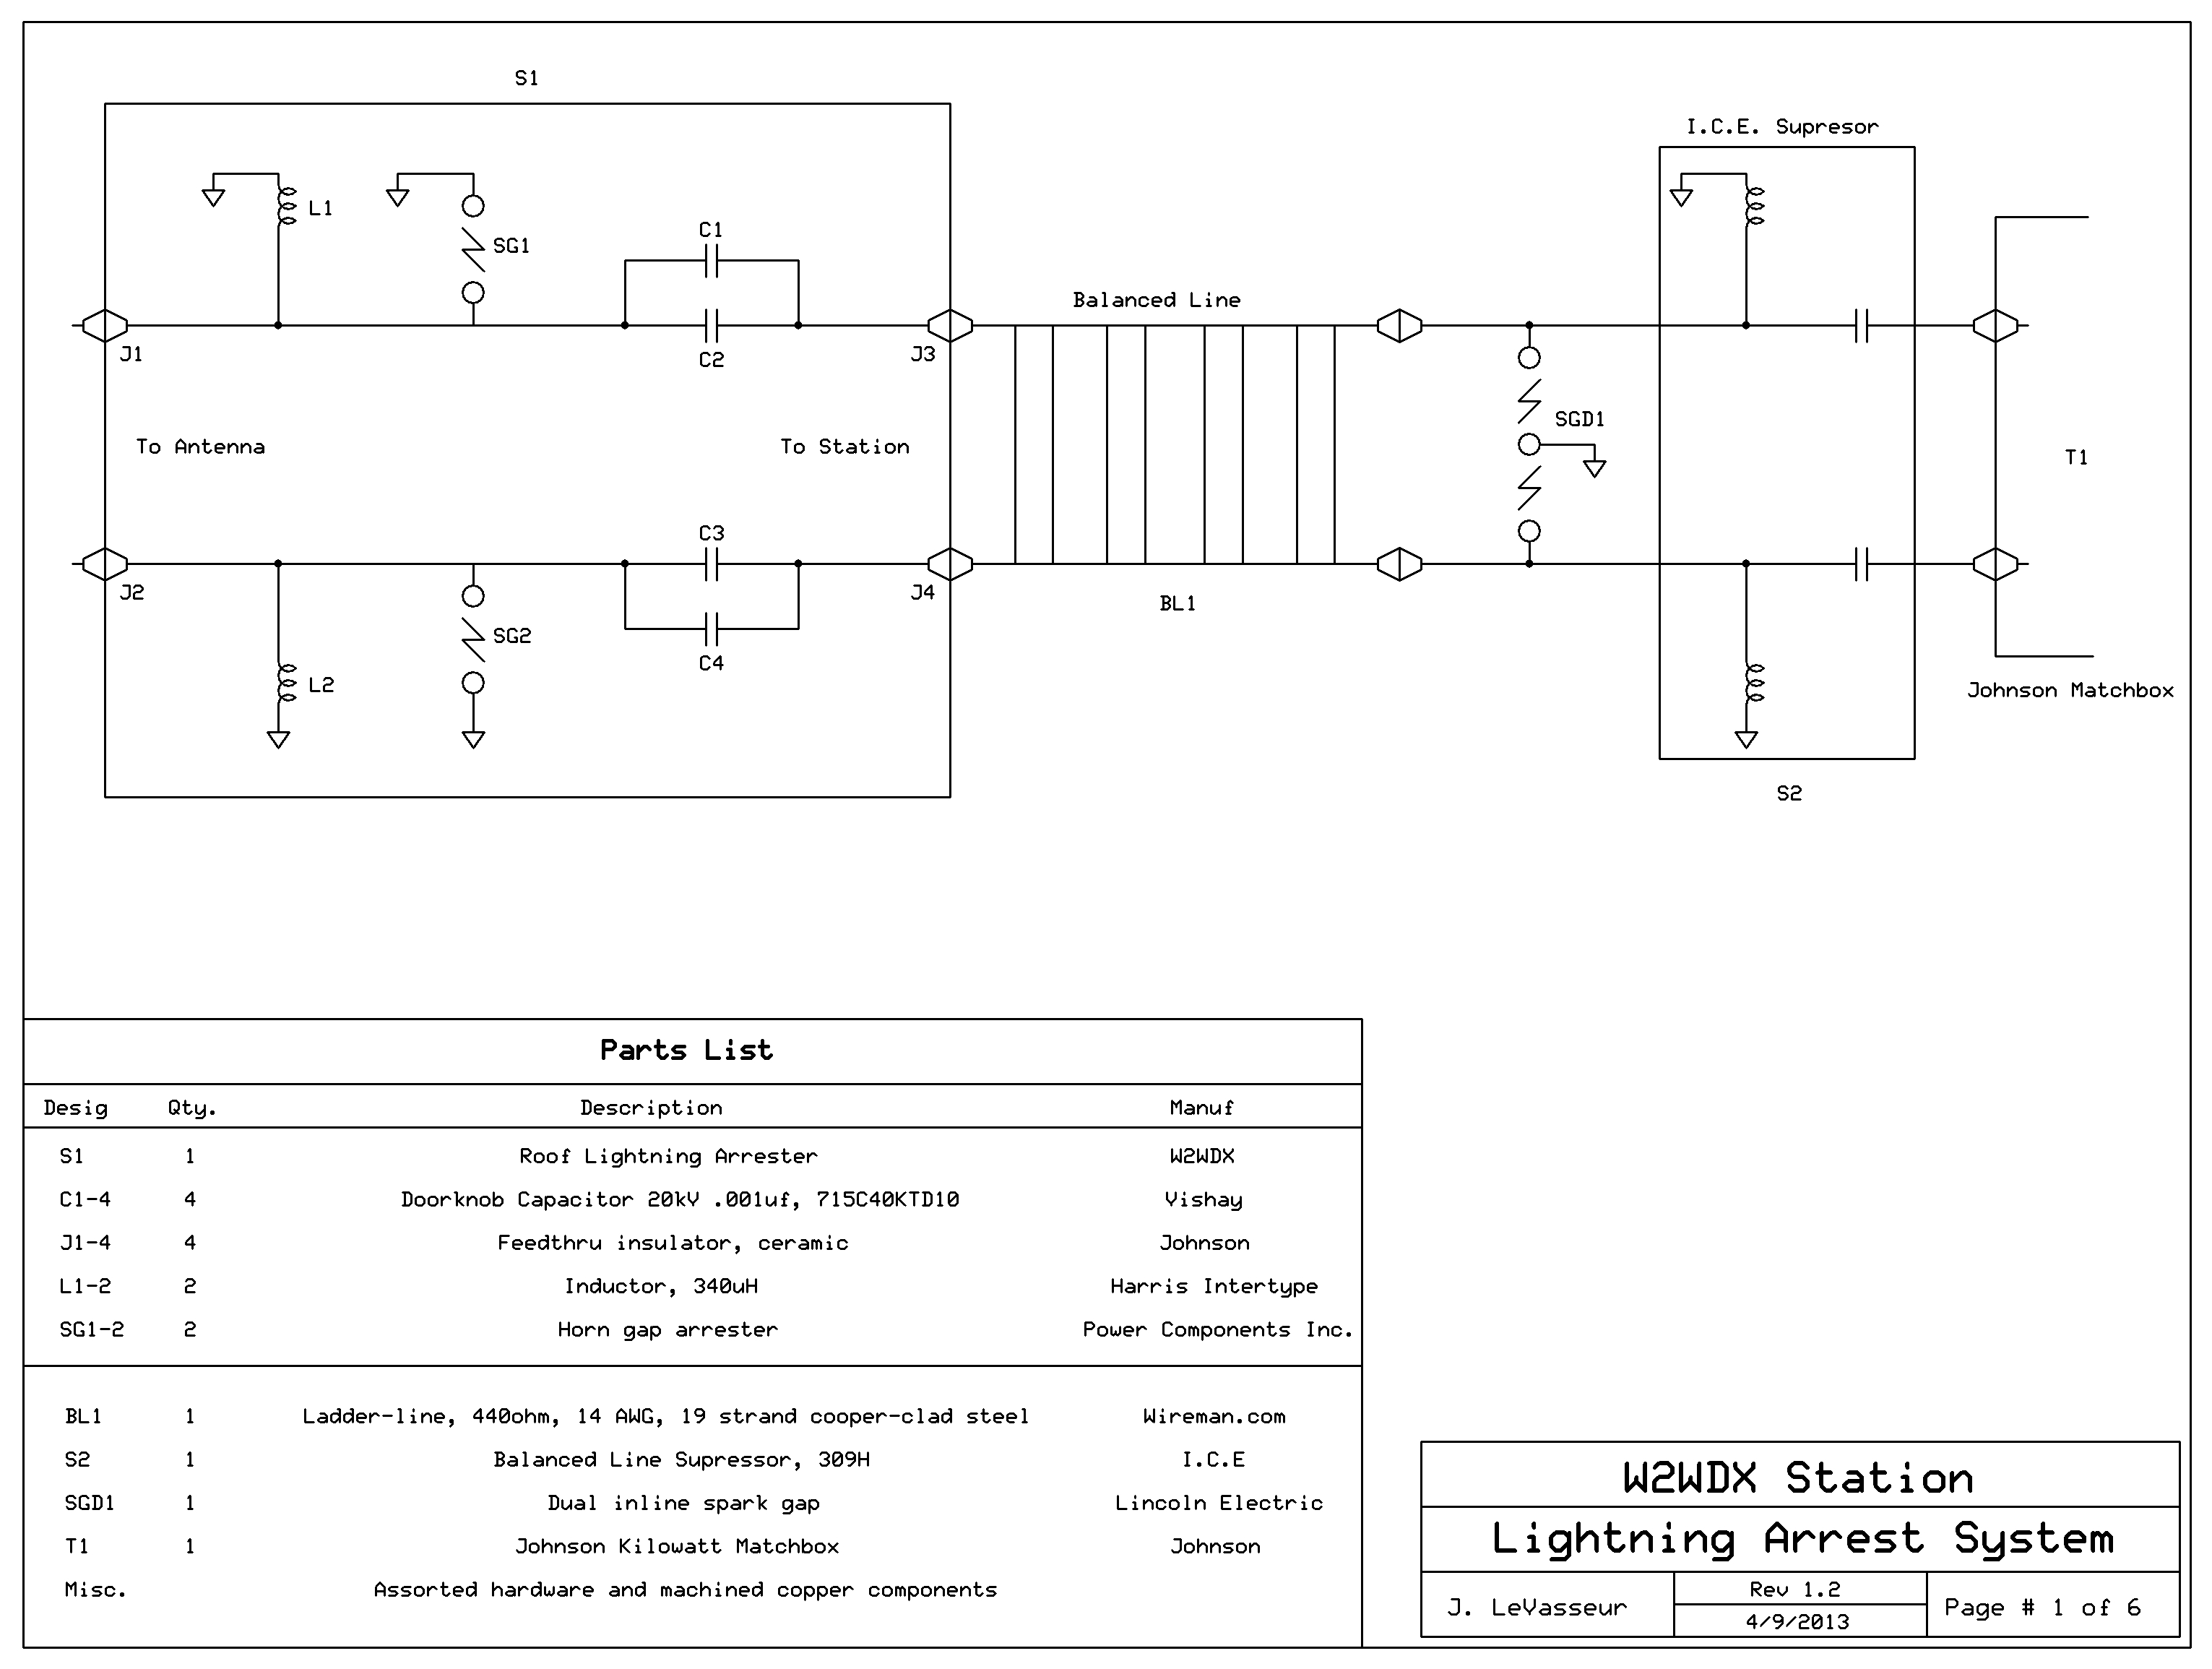 Balanced Transmission Line Lightning Supressor Diagram Of Lighting Arrester Horn Gap